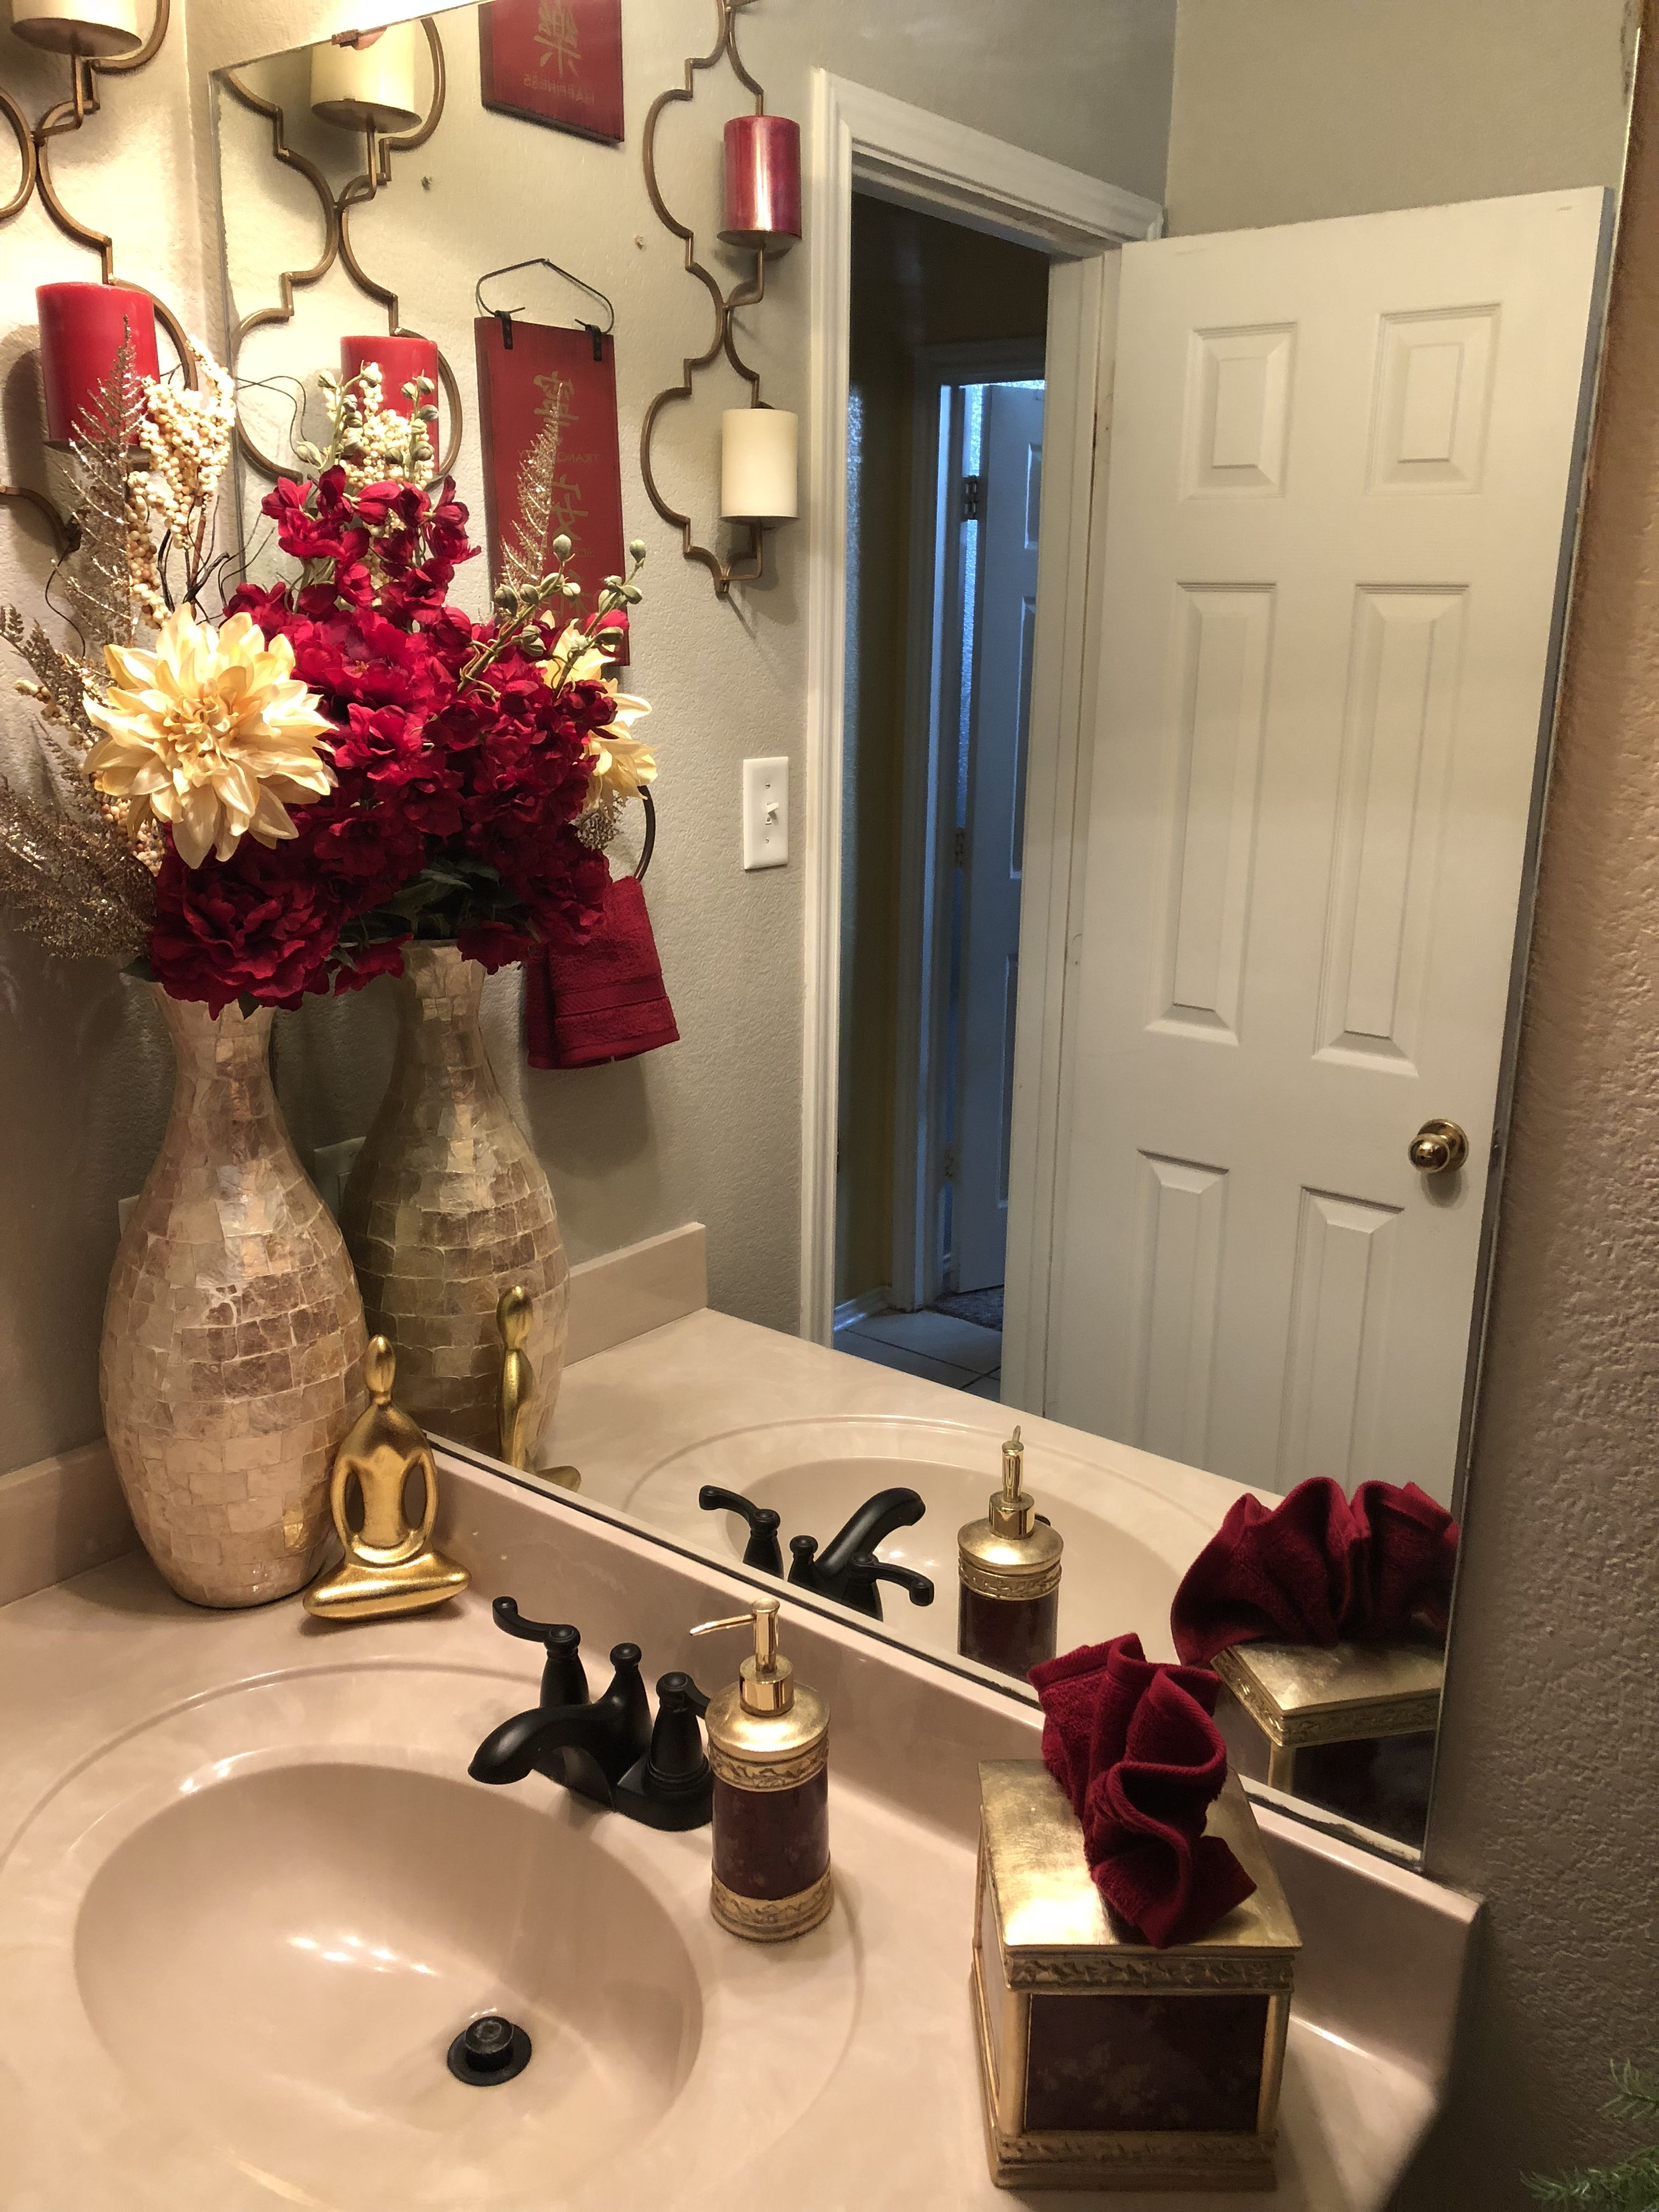 Pin By Mekco Ishae On Apartments Decorating Restroom Decor Red